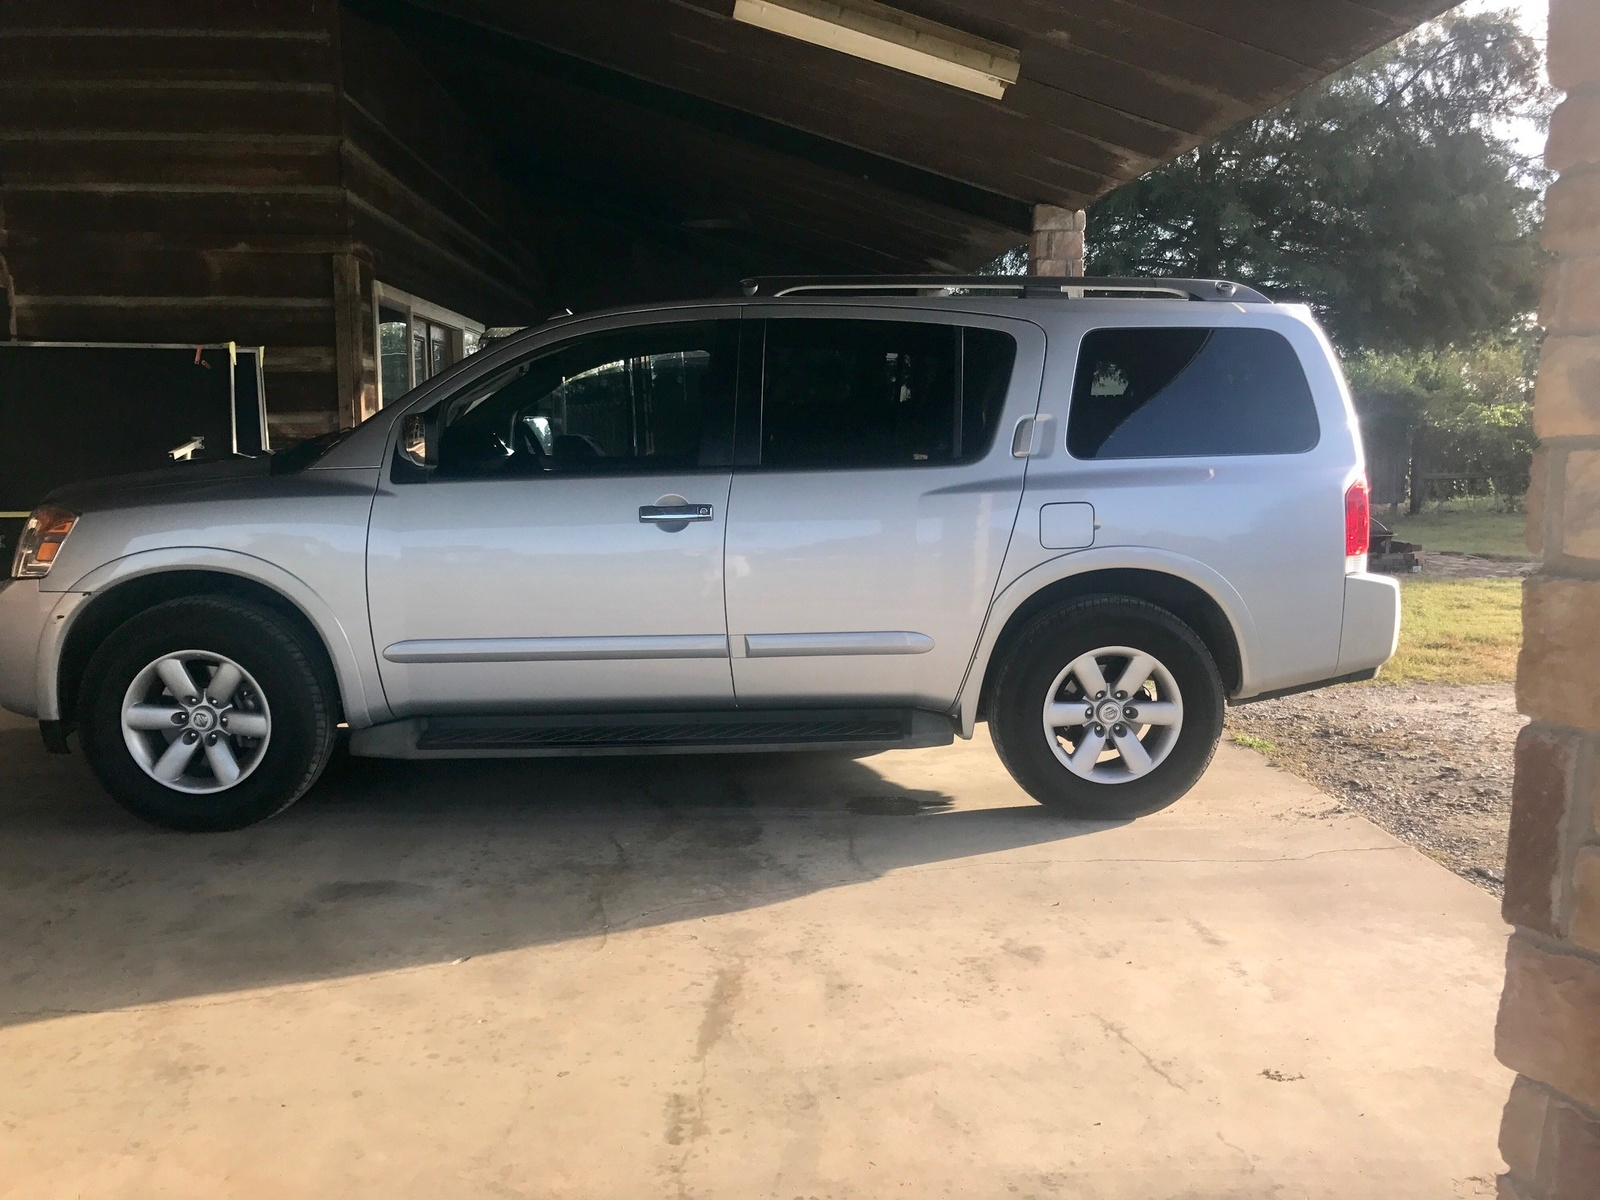 Picture of 2011 nissan armada sl 4wd exterior gallery_worthy